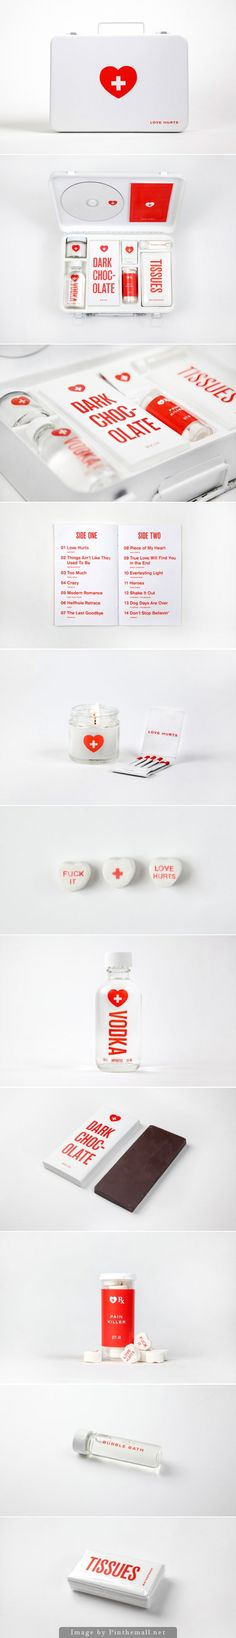 """Love Hurts, literally. Did you know that you can actually physically """"feel"""" the pain of heartbreak? It is that heavy, dull feeling in your chest after a traumatic break up or lost of a loved one. Unfortunately the only cure for that is time. But fear not - Melanie Chernock, a graduate from SVA created a first aid kit for heart breaks (I'd personally add a pint of ice cream to the kit if it wouldn't melt, but that's just me)"""